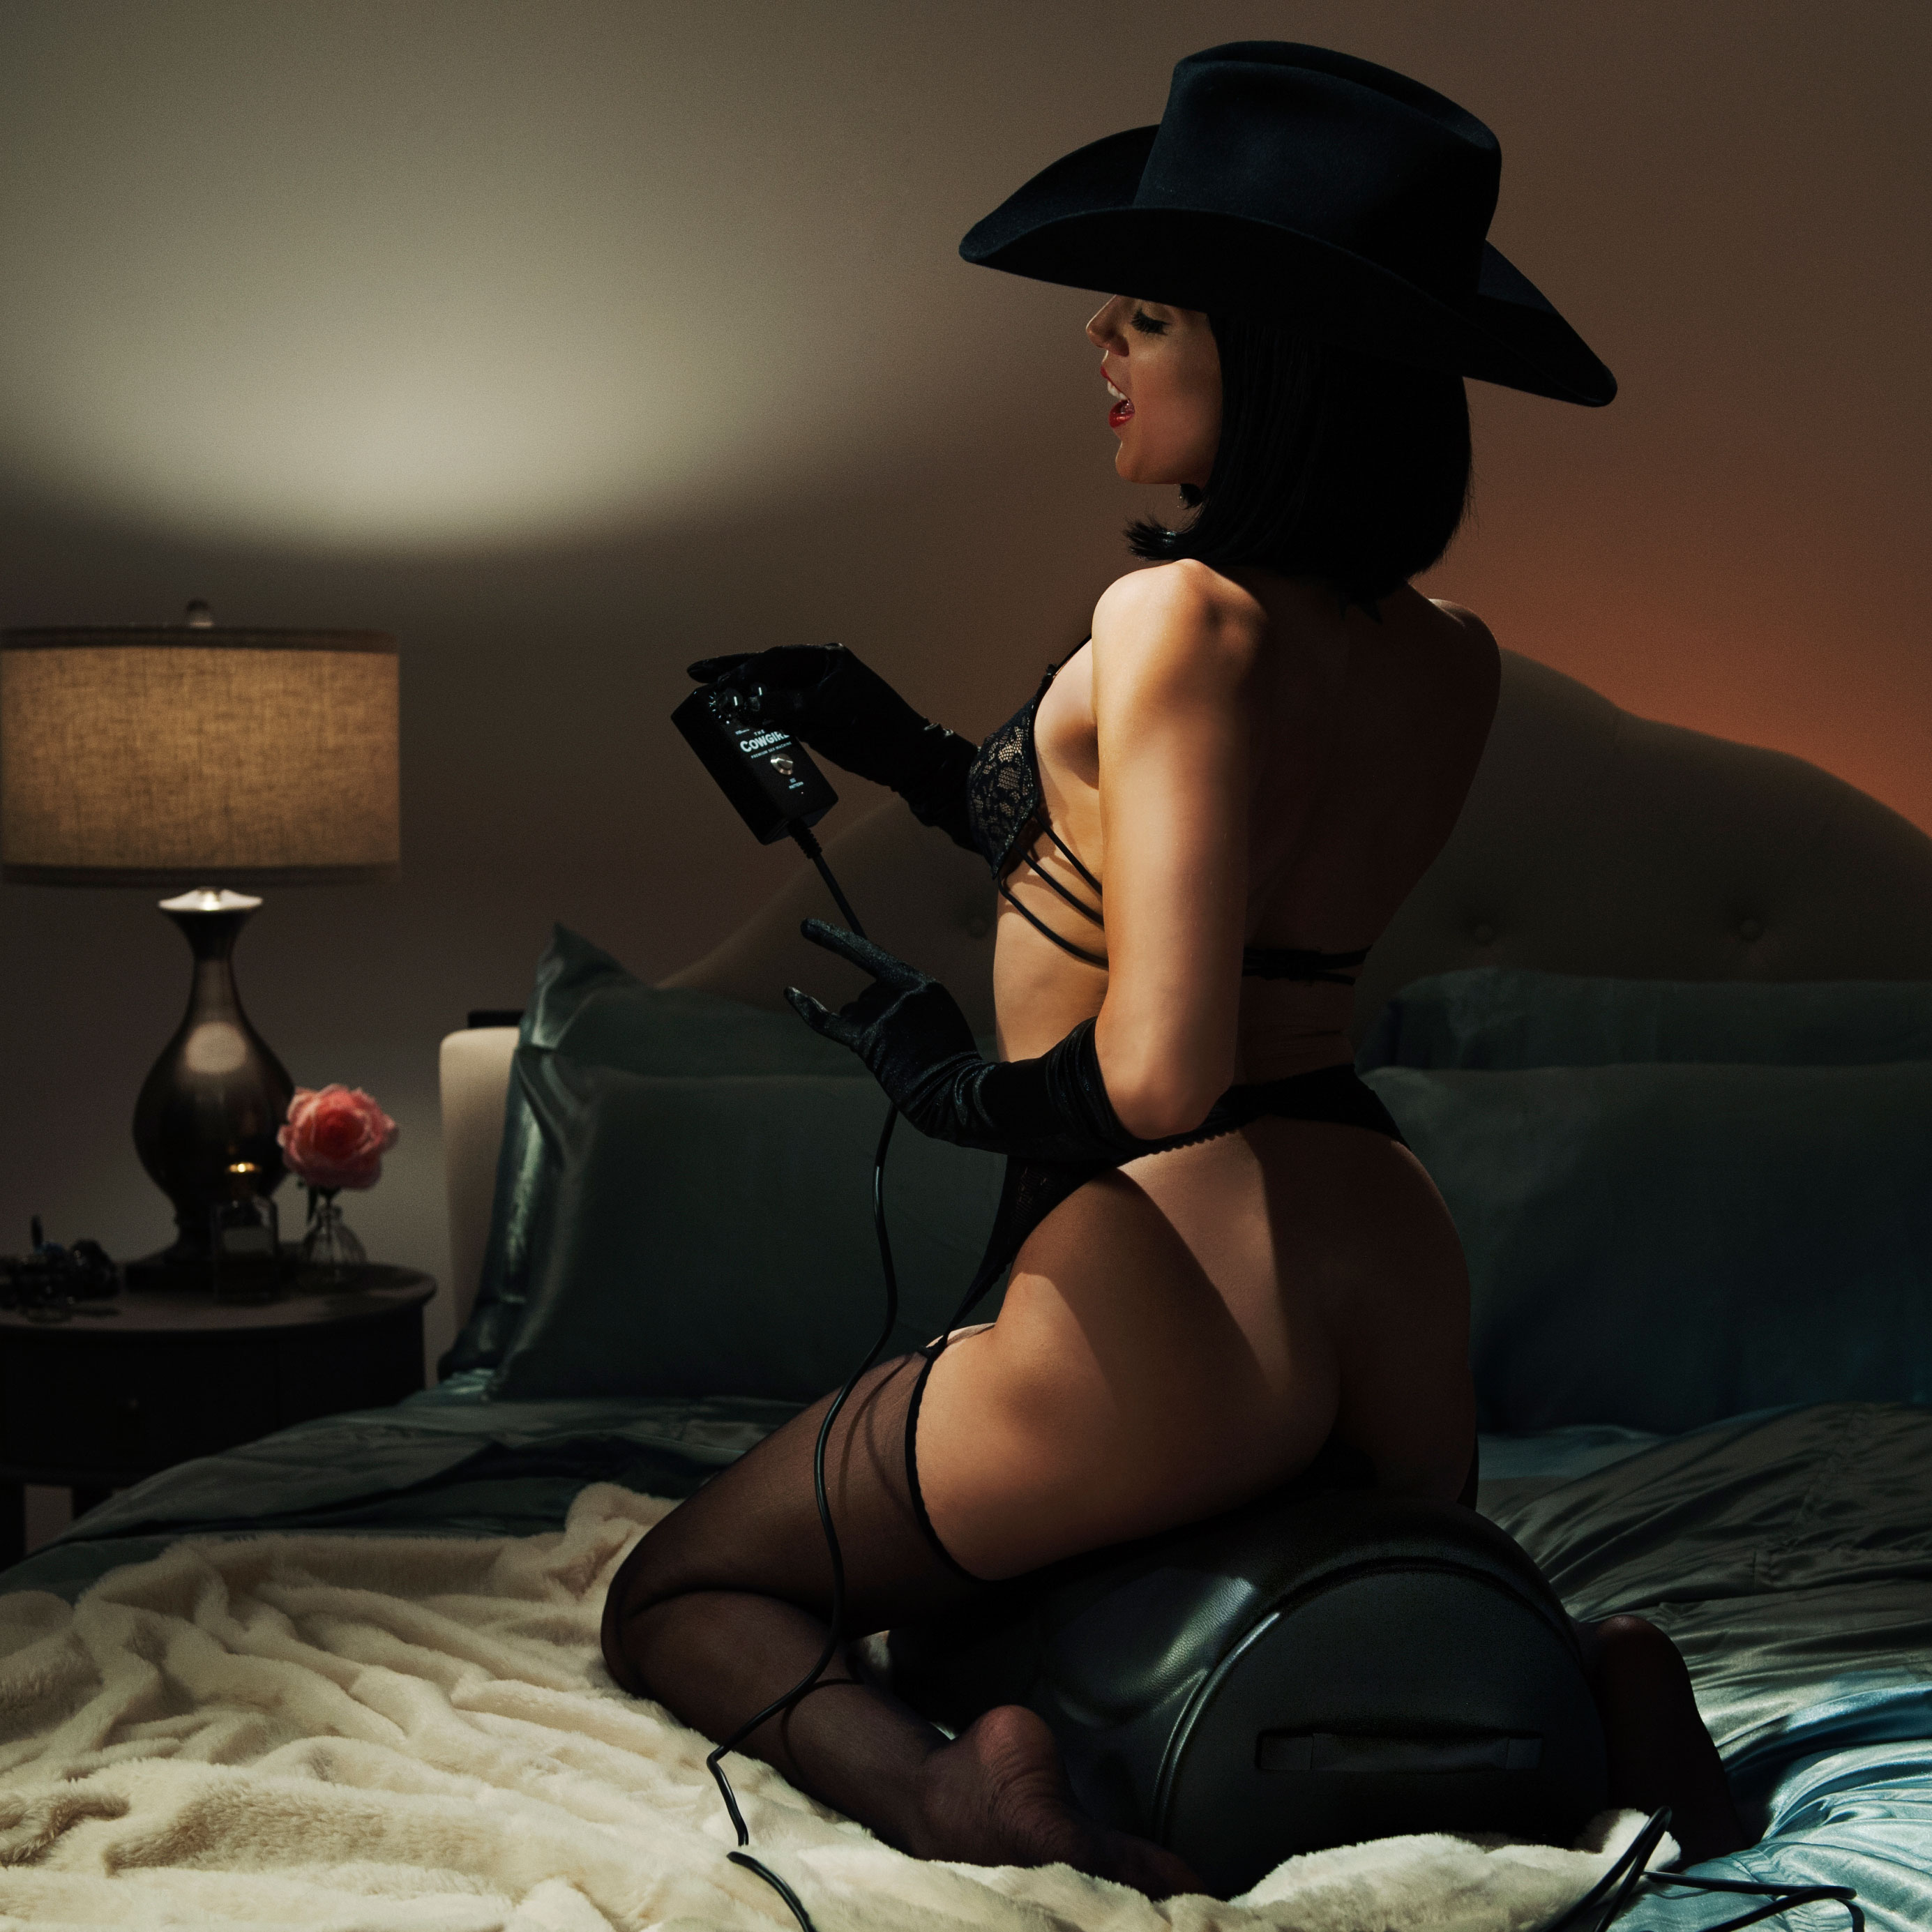 The Cowgirl - Ride Em Cowgirl